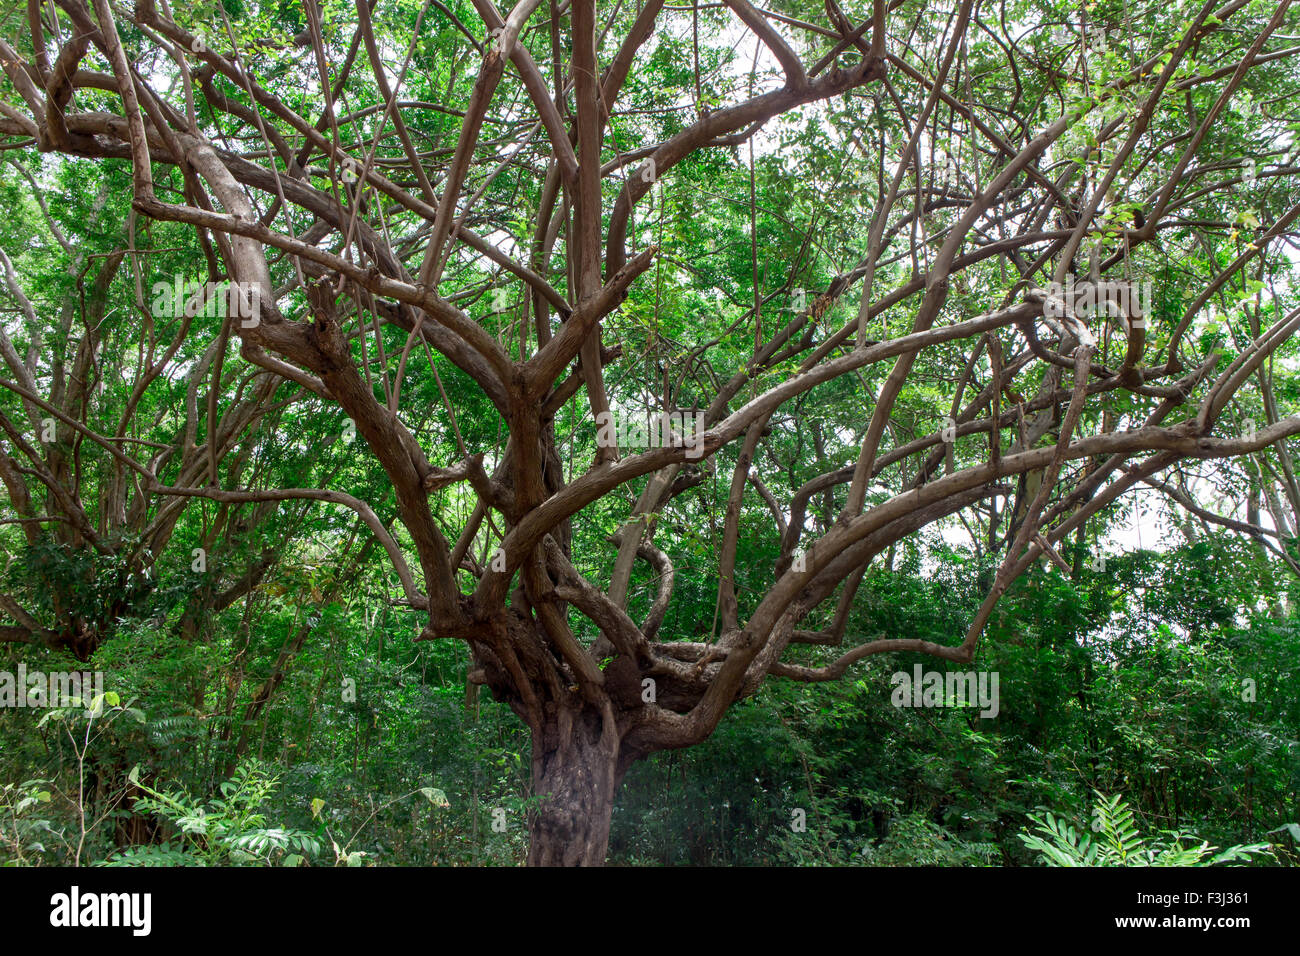 big tree with branch magnify - Stock Image